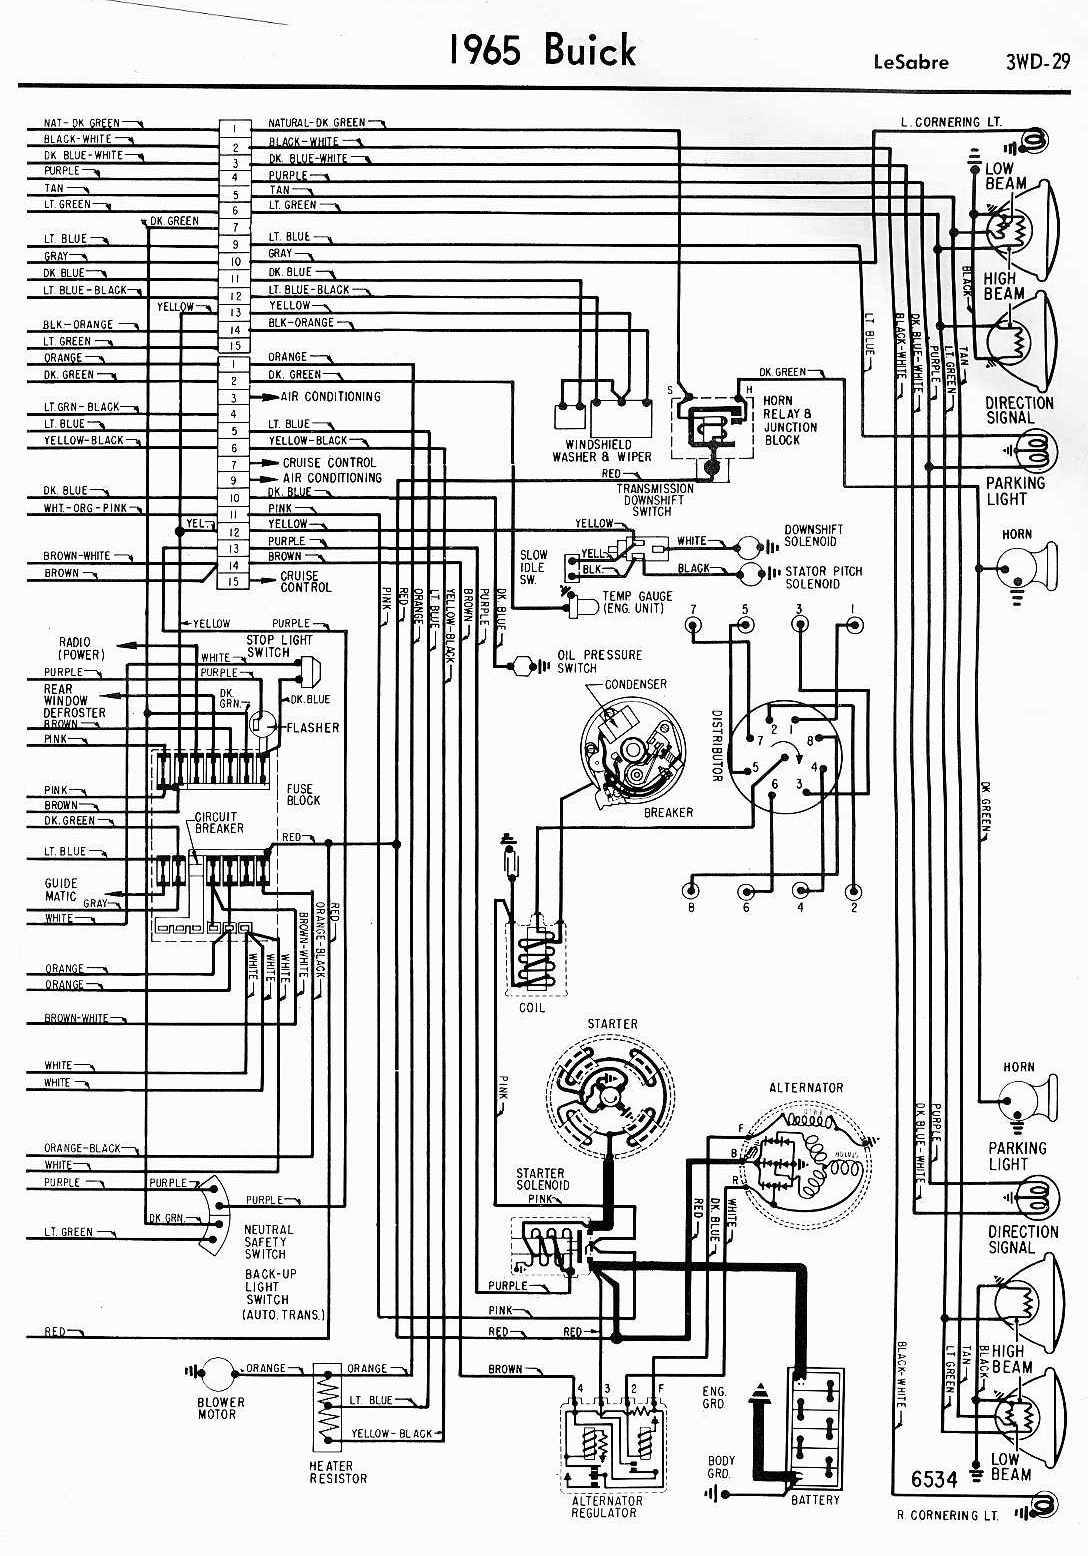 Buick - Car Manuals, Wiring Diagrams PDF & Fault Codes